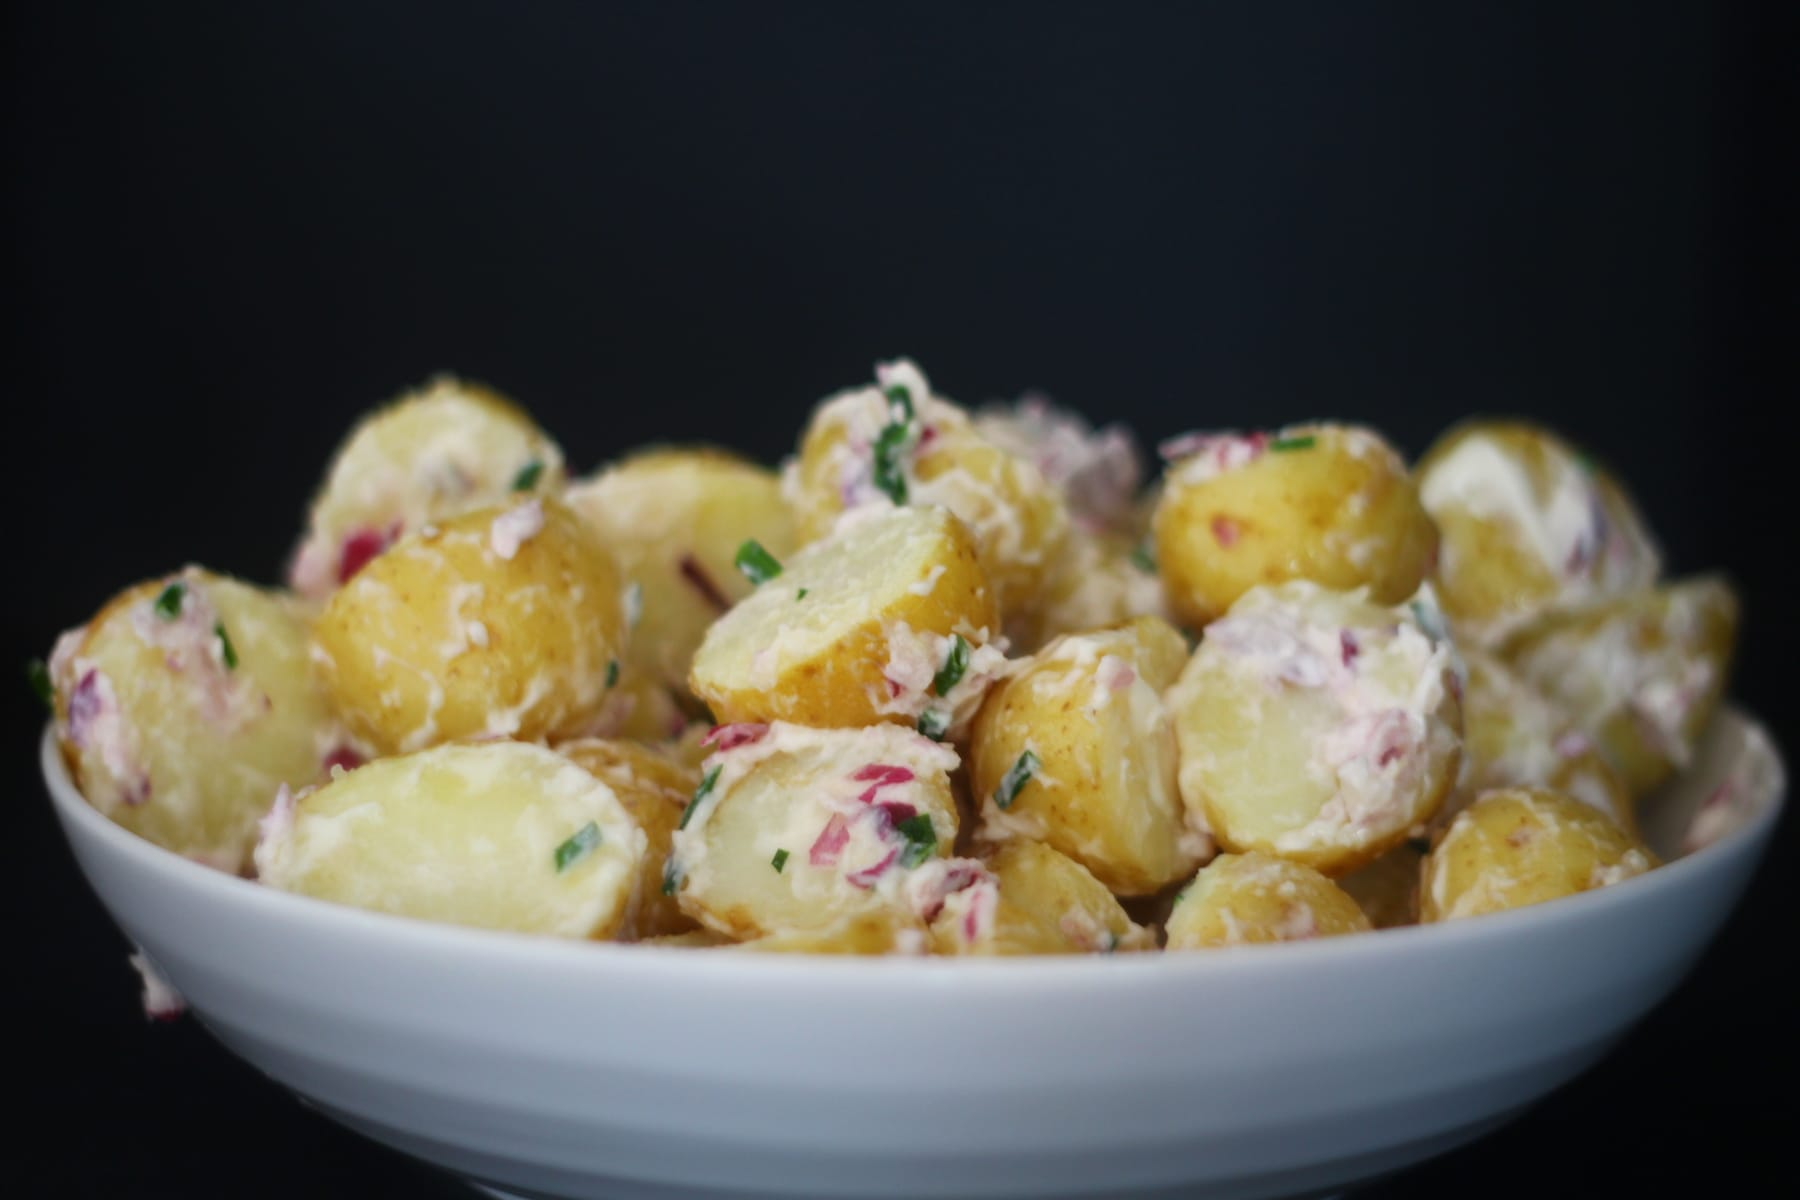 Potato Salad with a Mayo Dresssing, Red Onion and Chives.